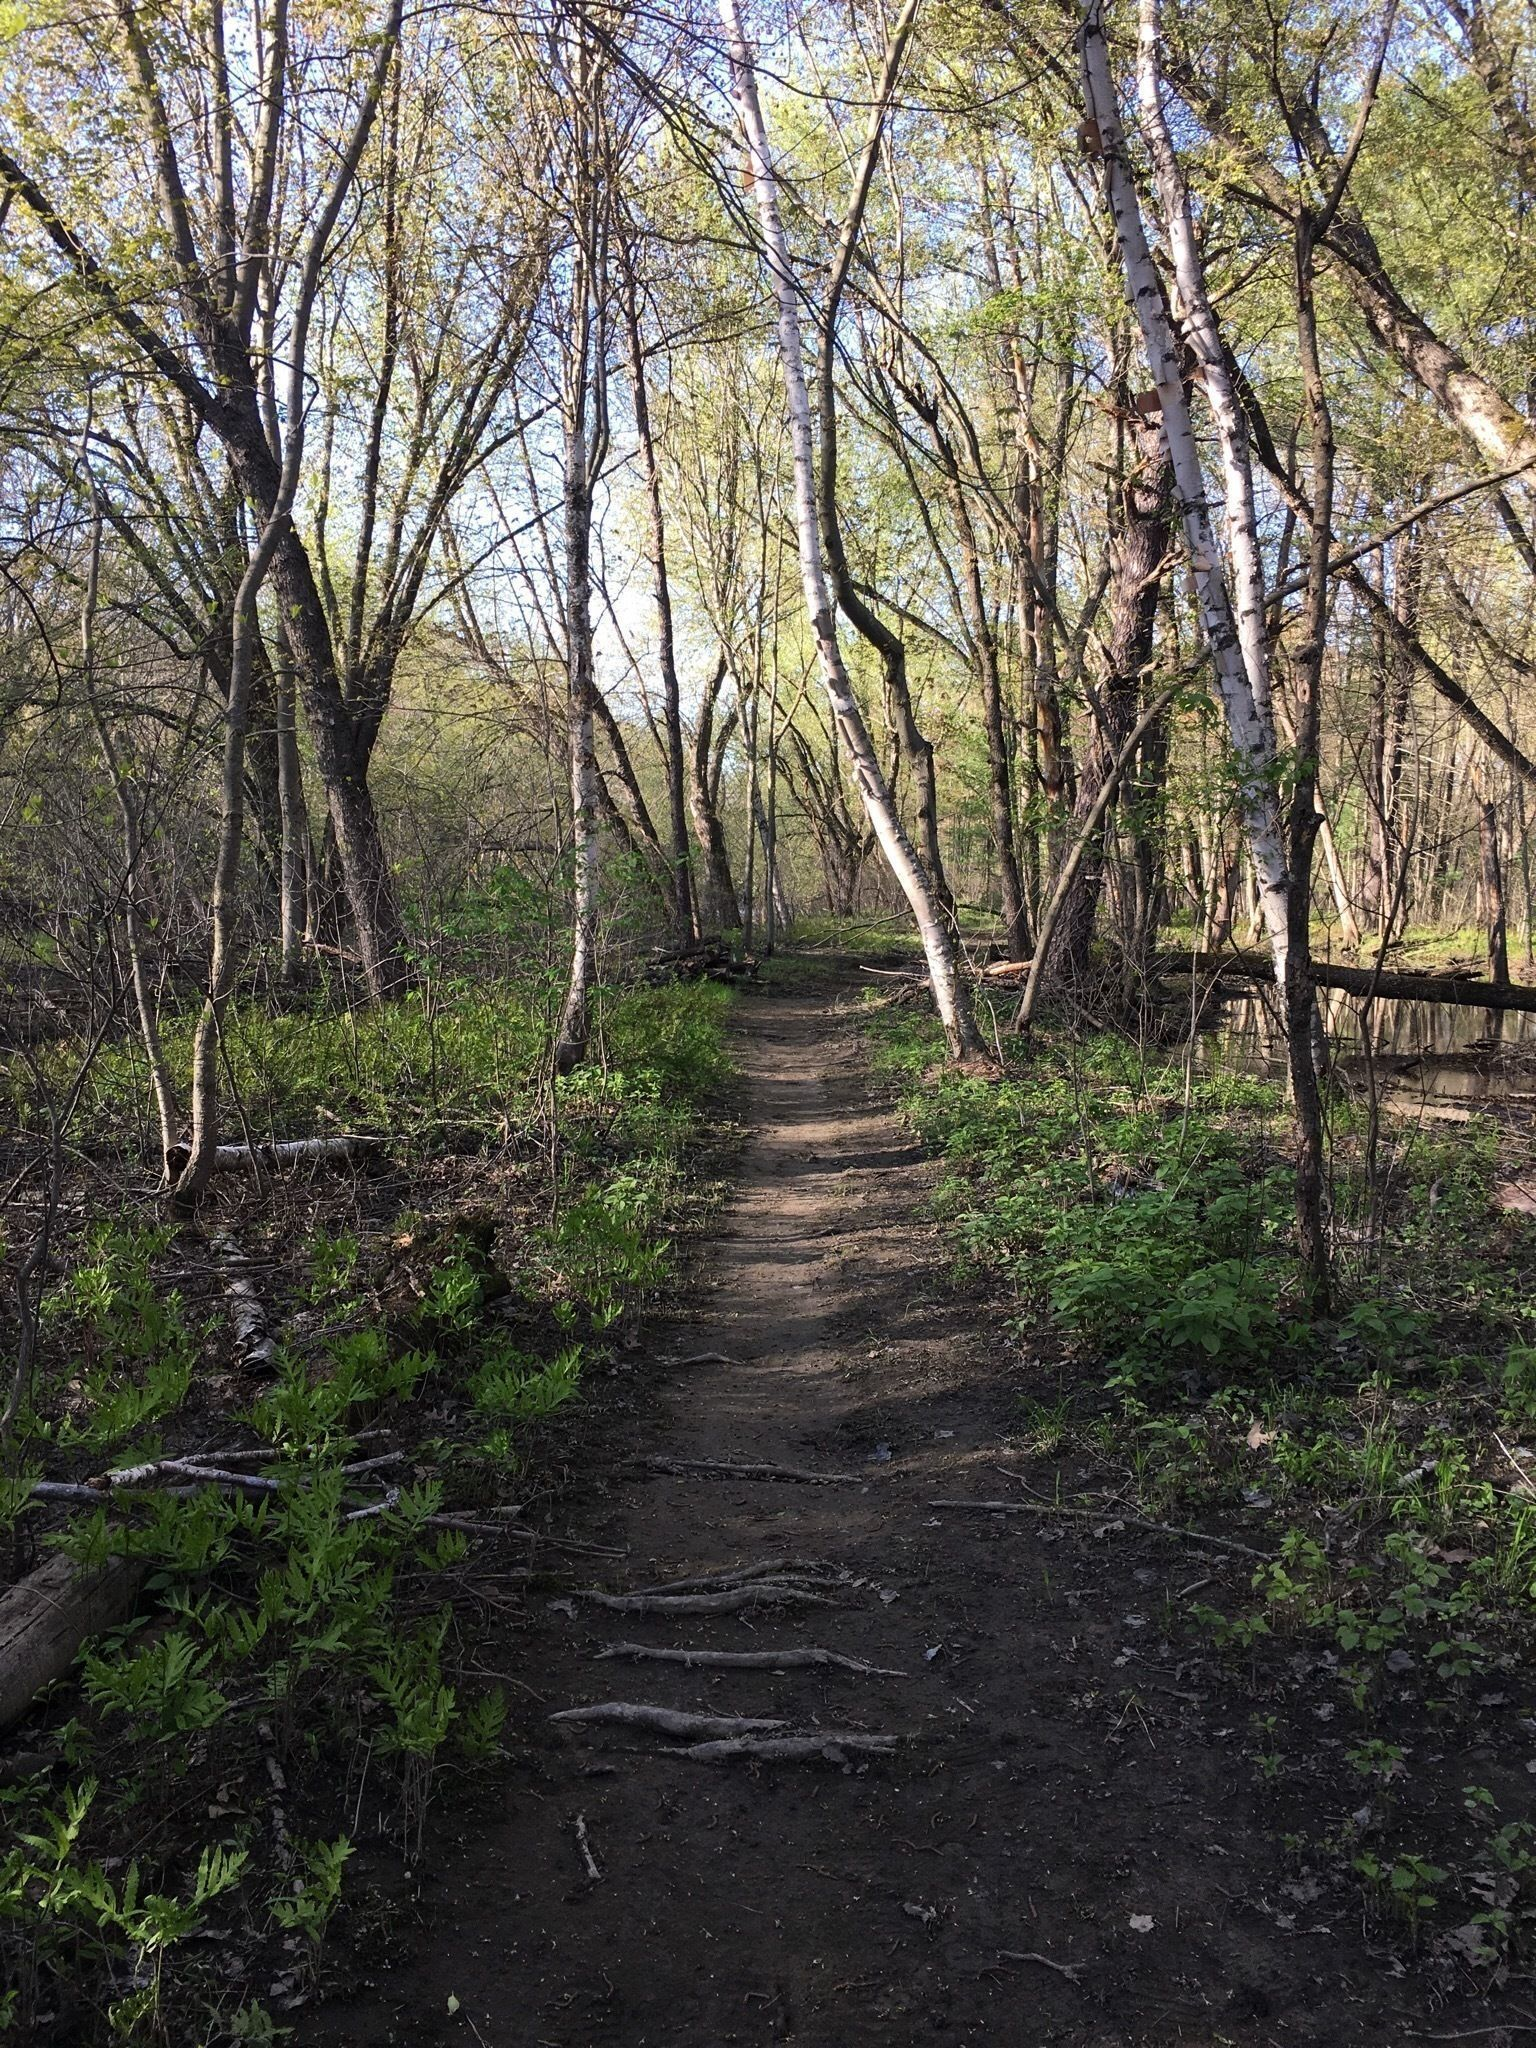 Peters Of Nashua >> Nashua River and Oxbow Trail Loop - Massachusetts | AllTrails